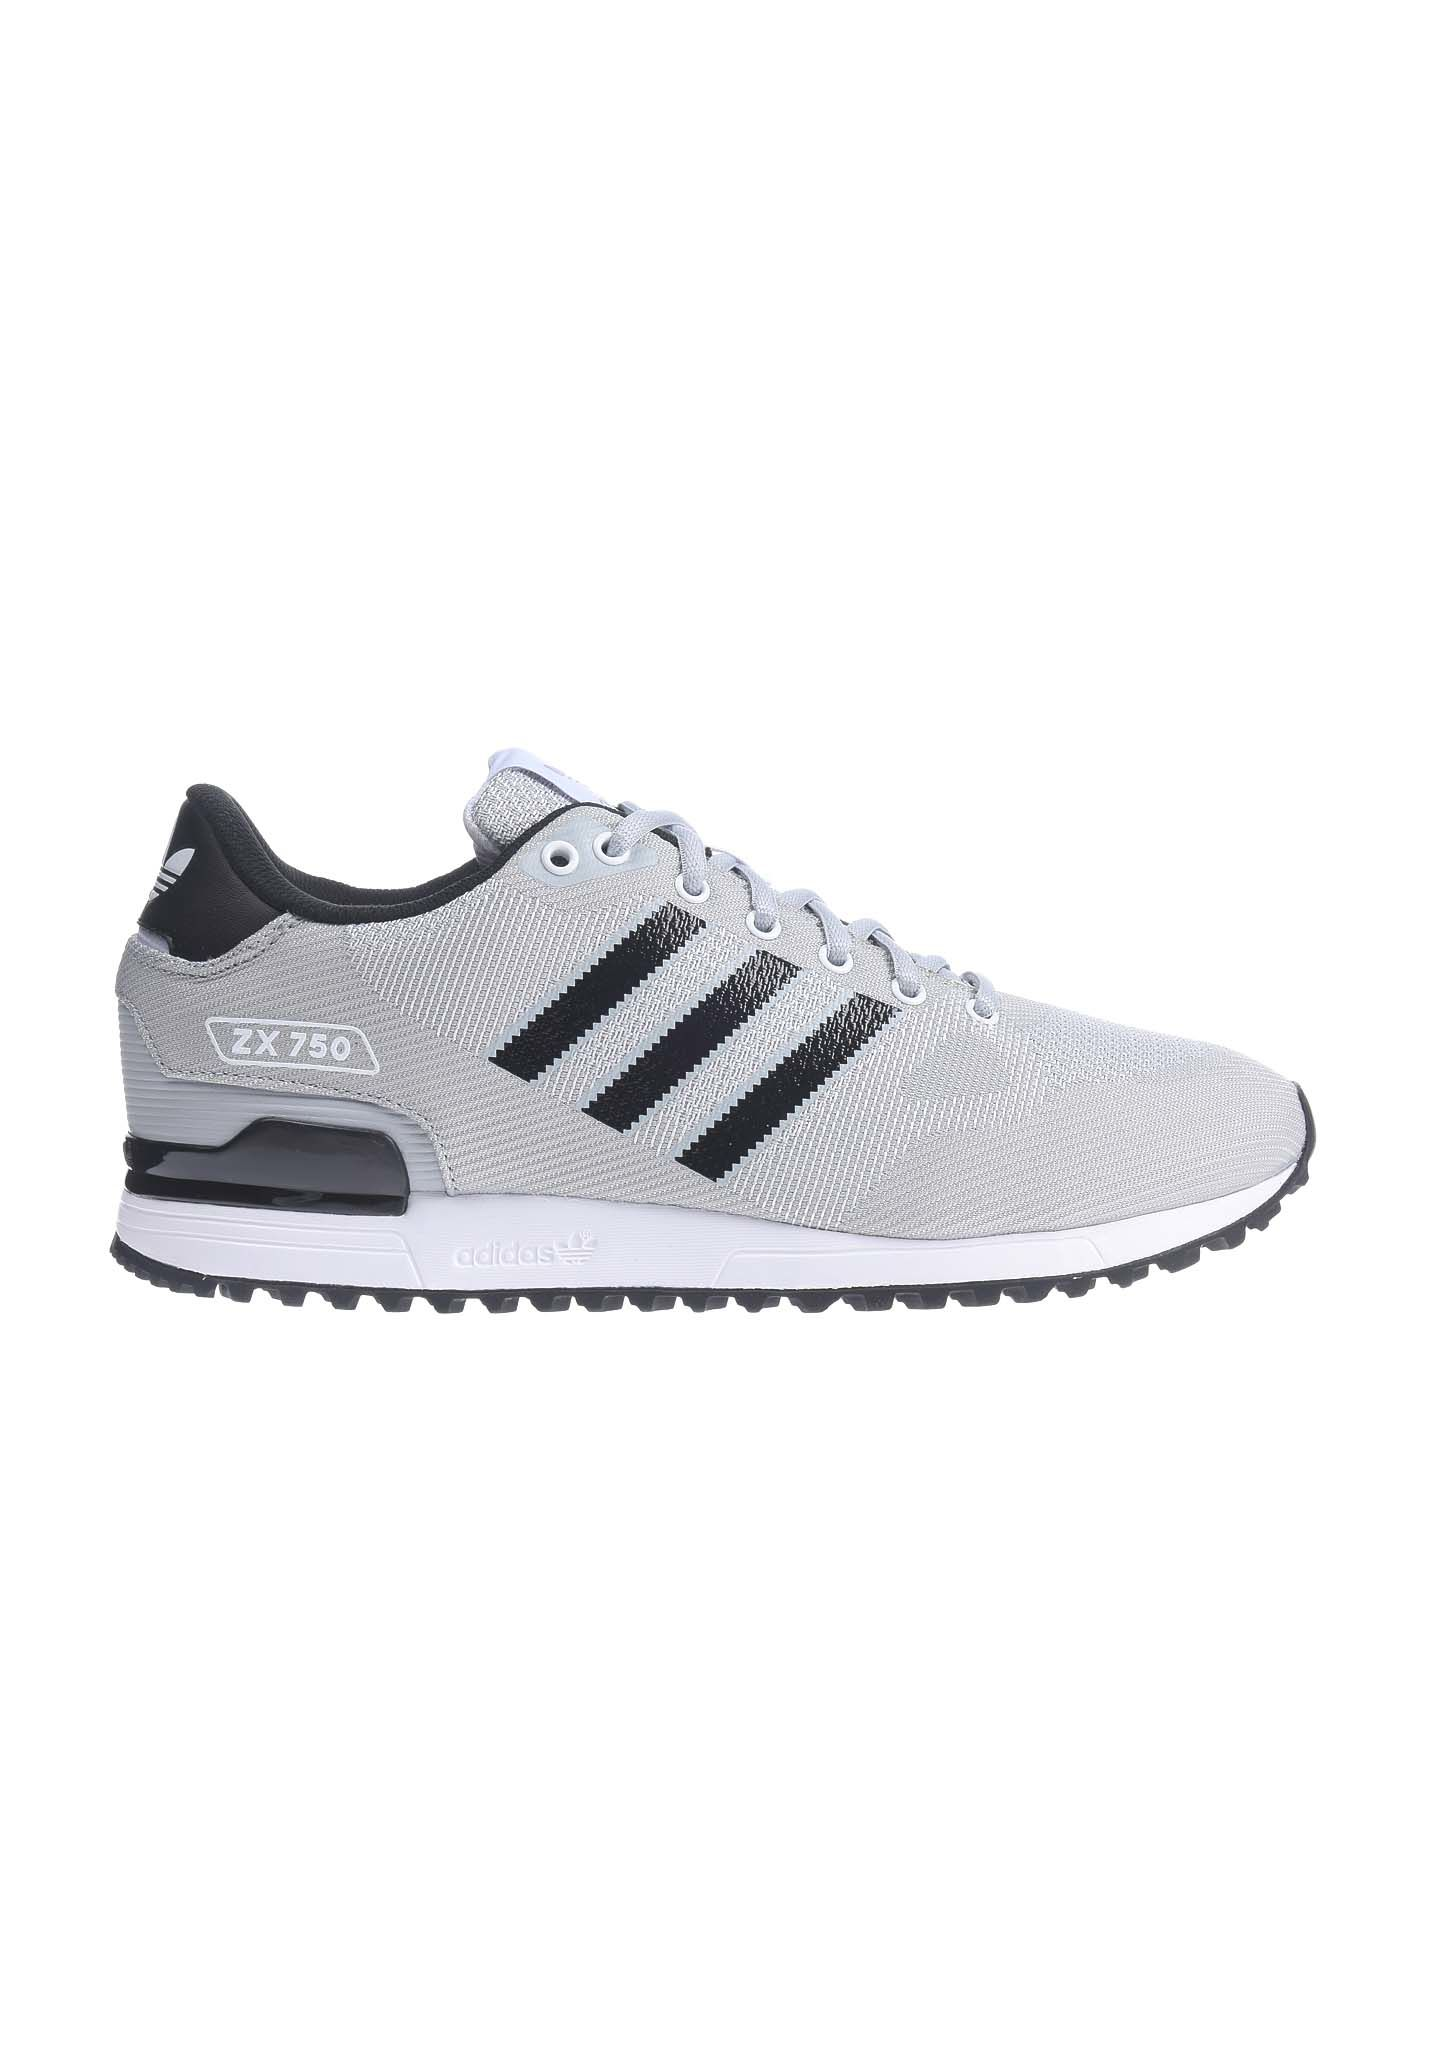 new style 084c2 744eb ADIDAS ORIGINALS ZX 750 - Zapatillas para Hombres - Gris - Planet Sports